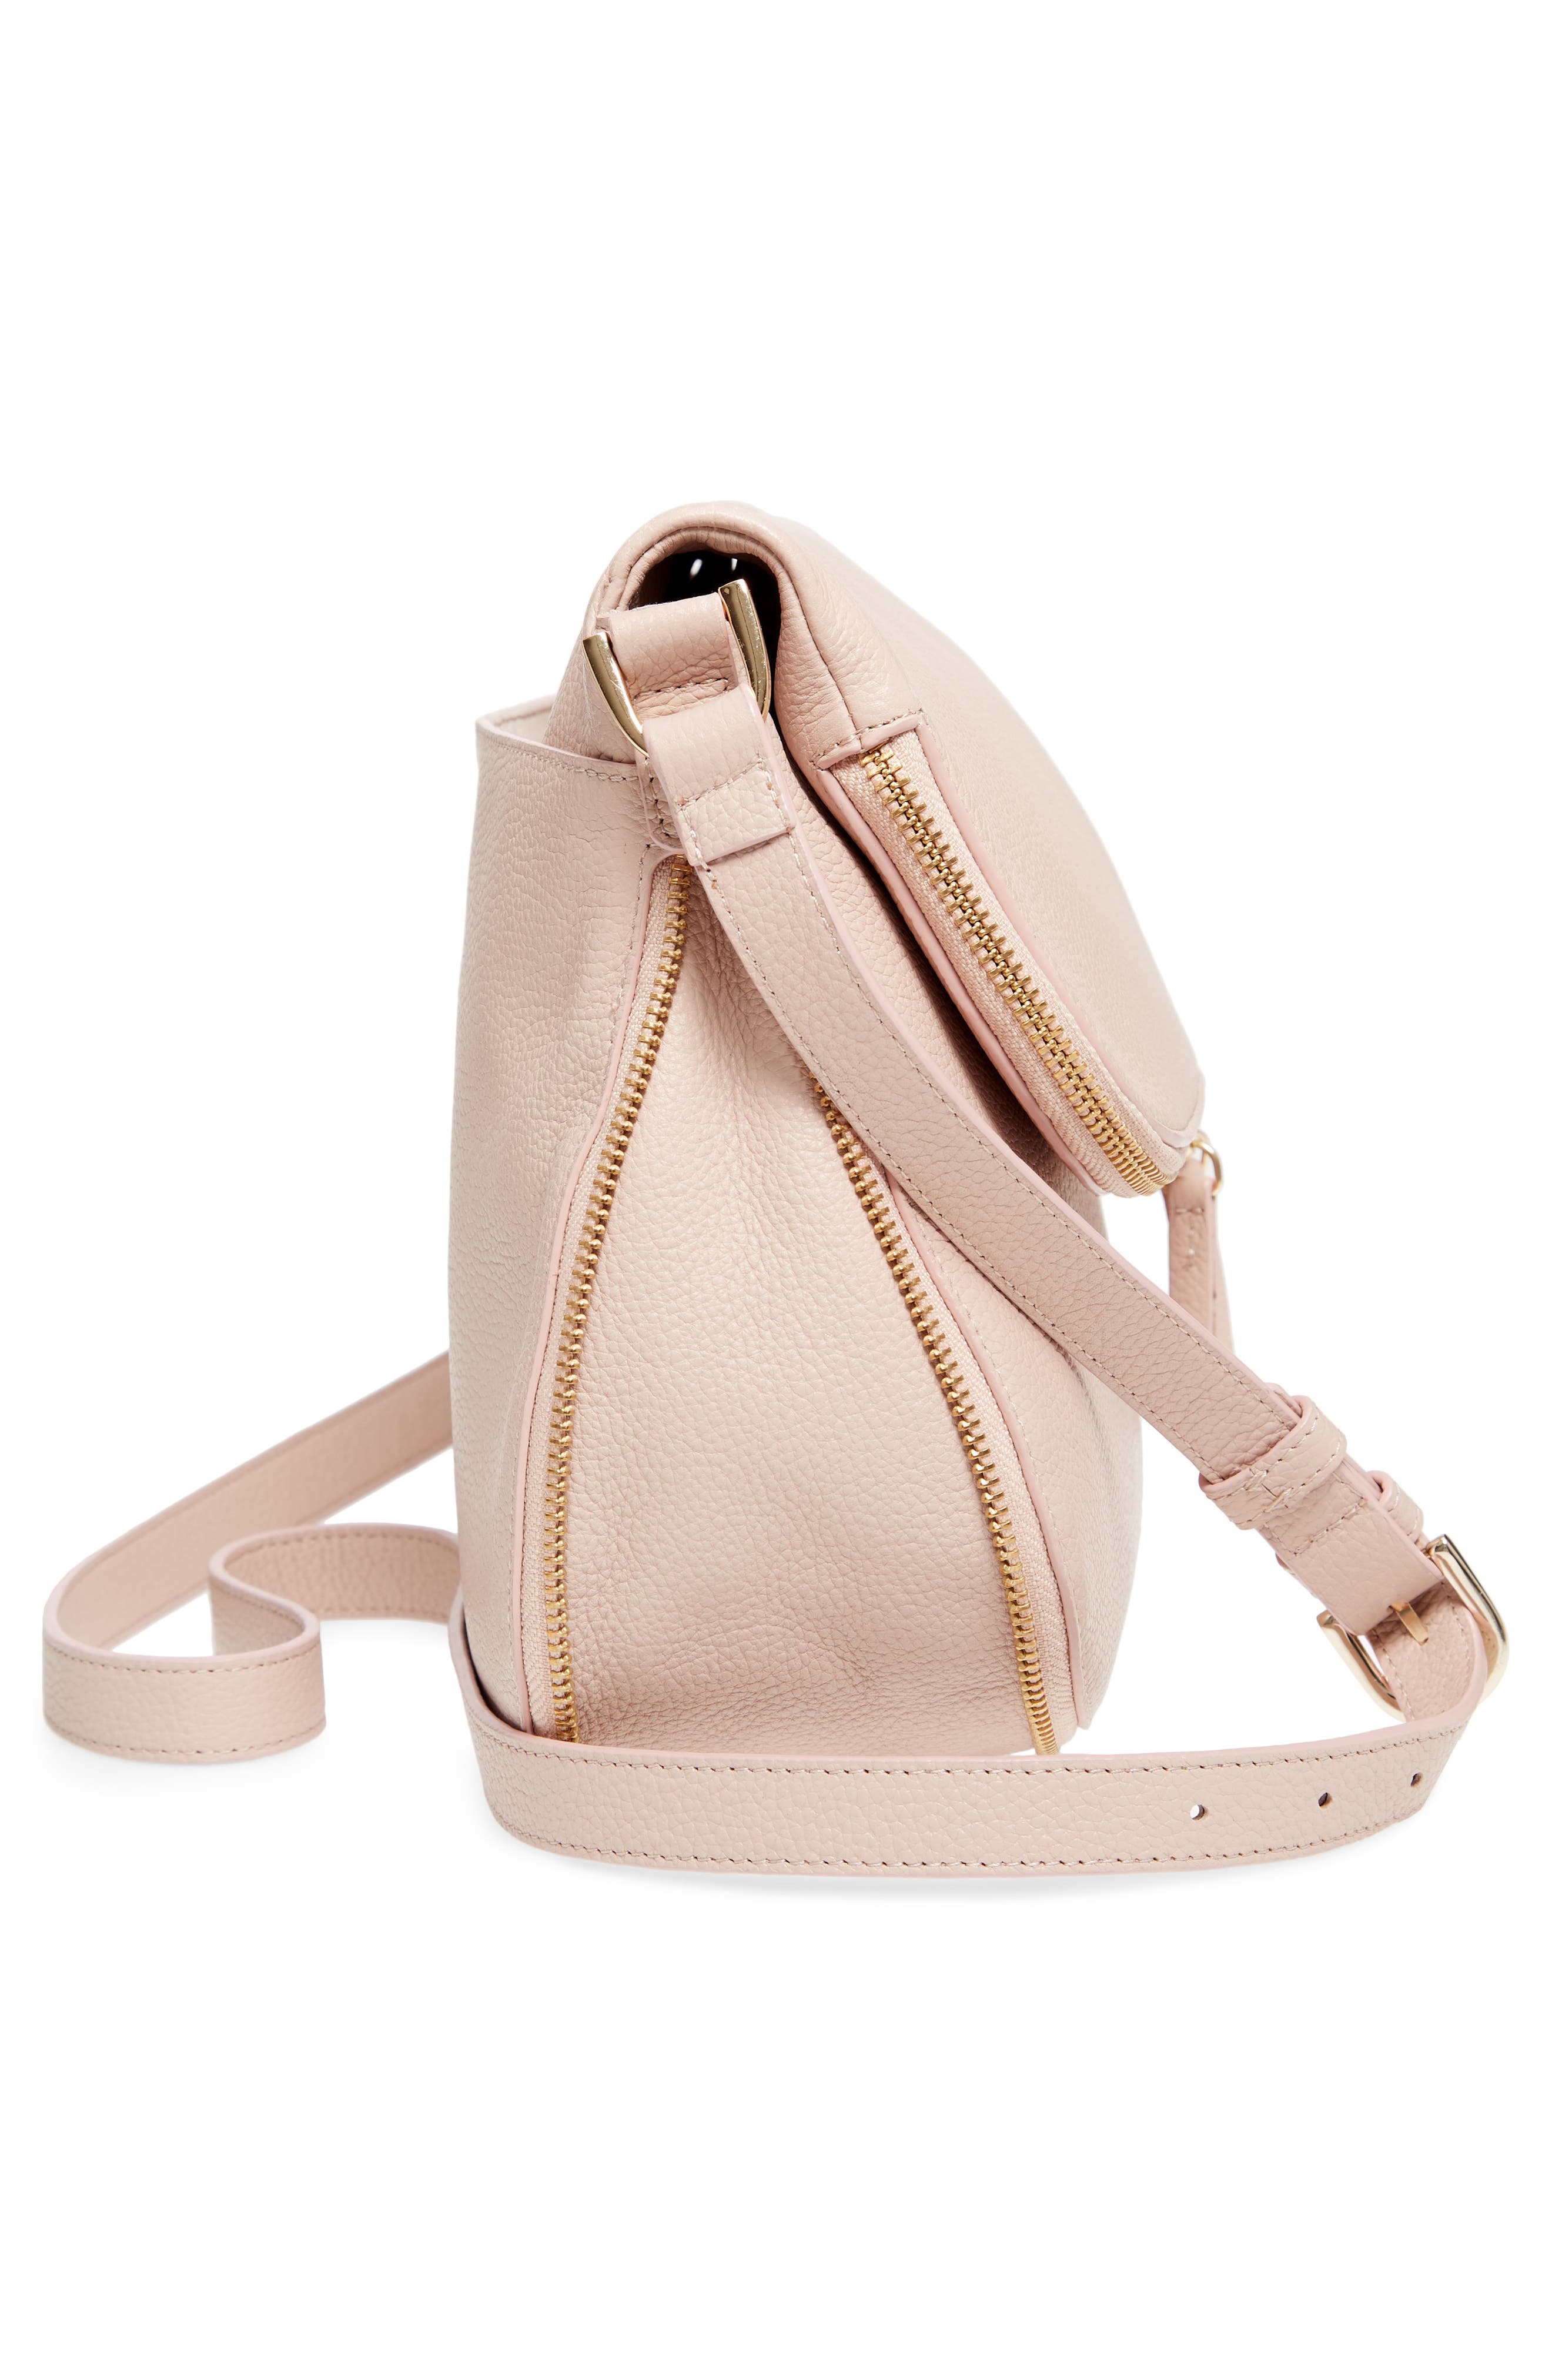 Kara Leather Expandable Crossbody Bag,                             Alternate thumbnail 5, color,                             PINK ROSECLOUD